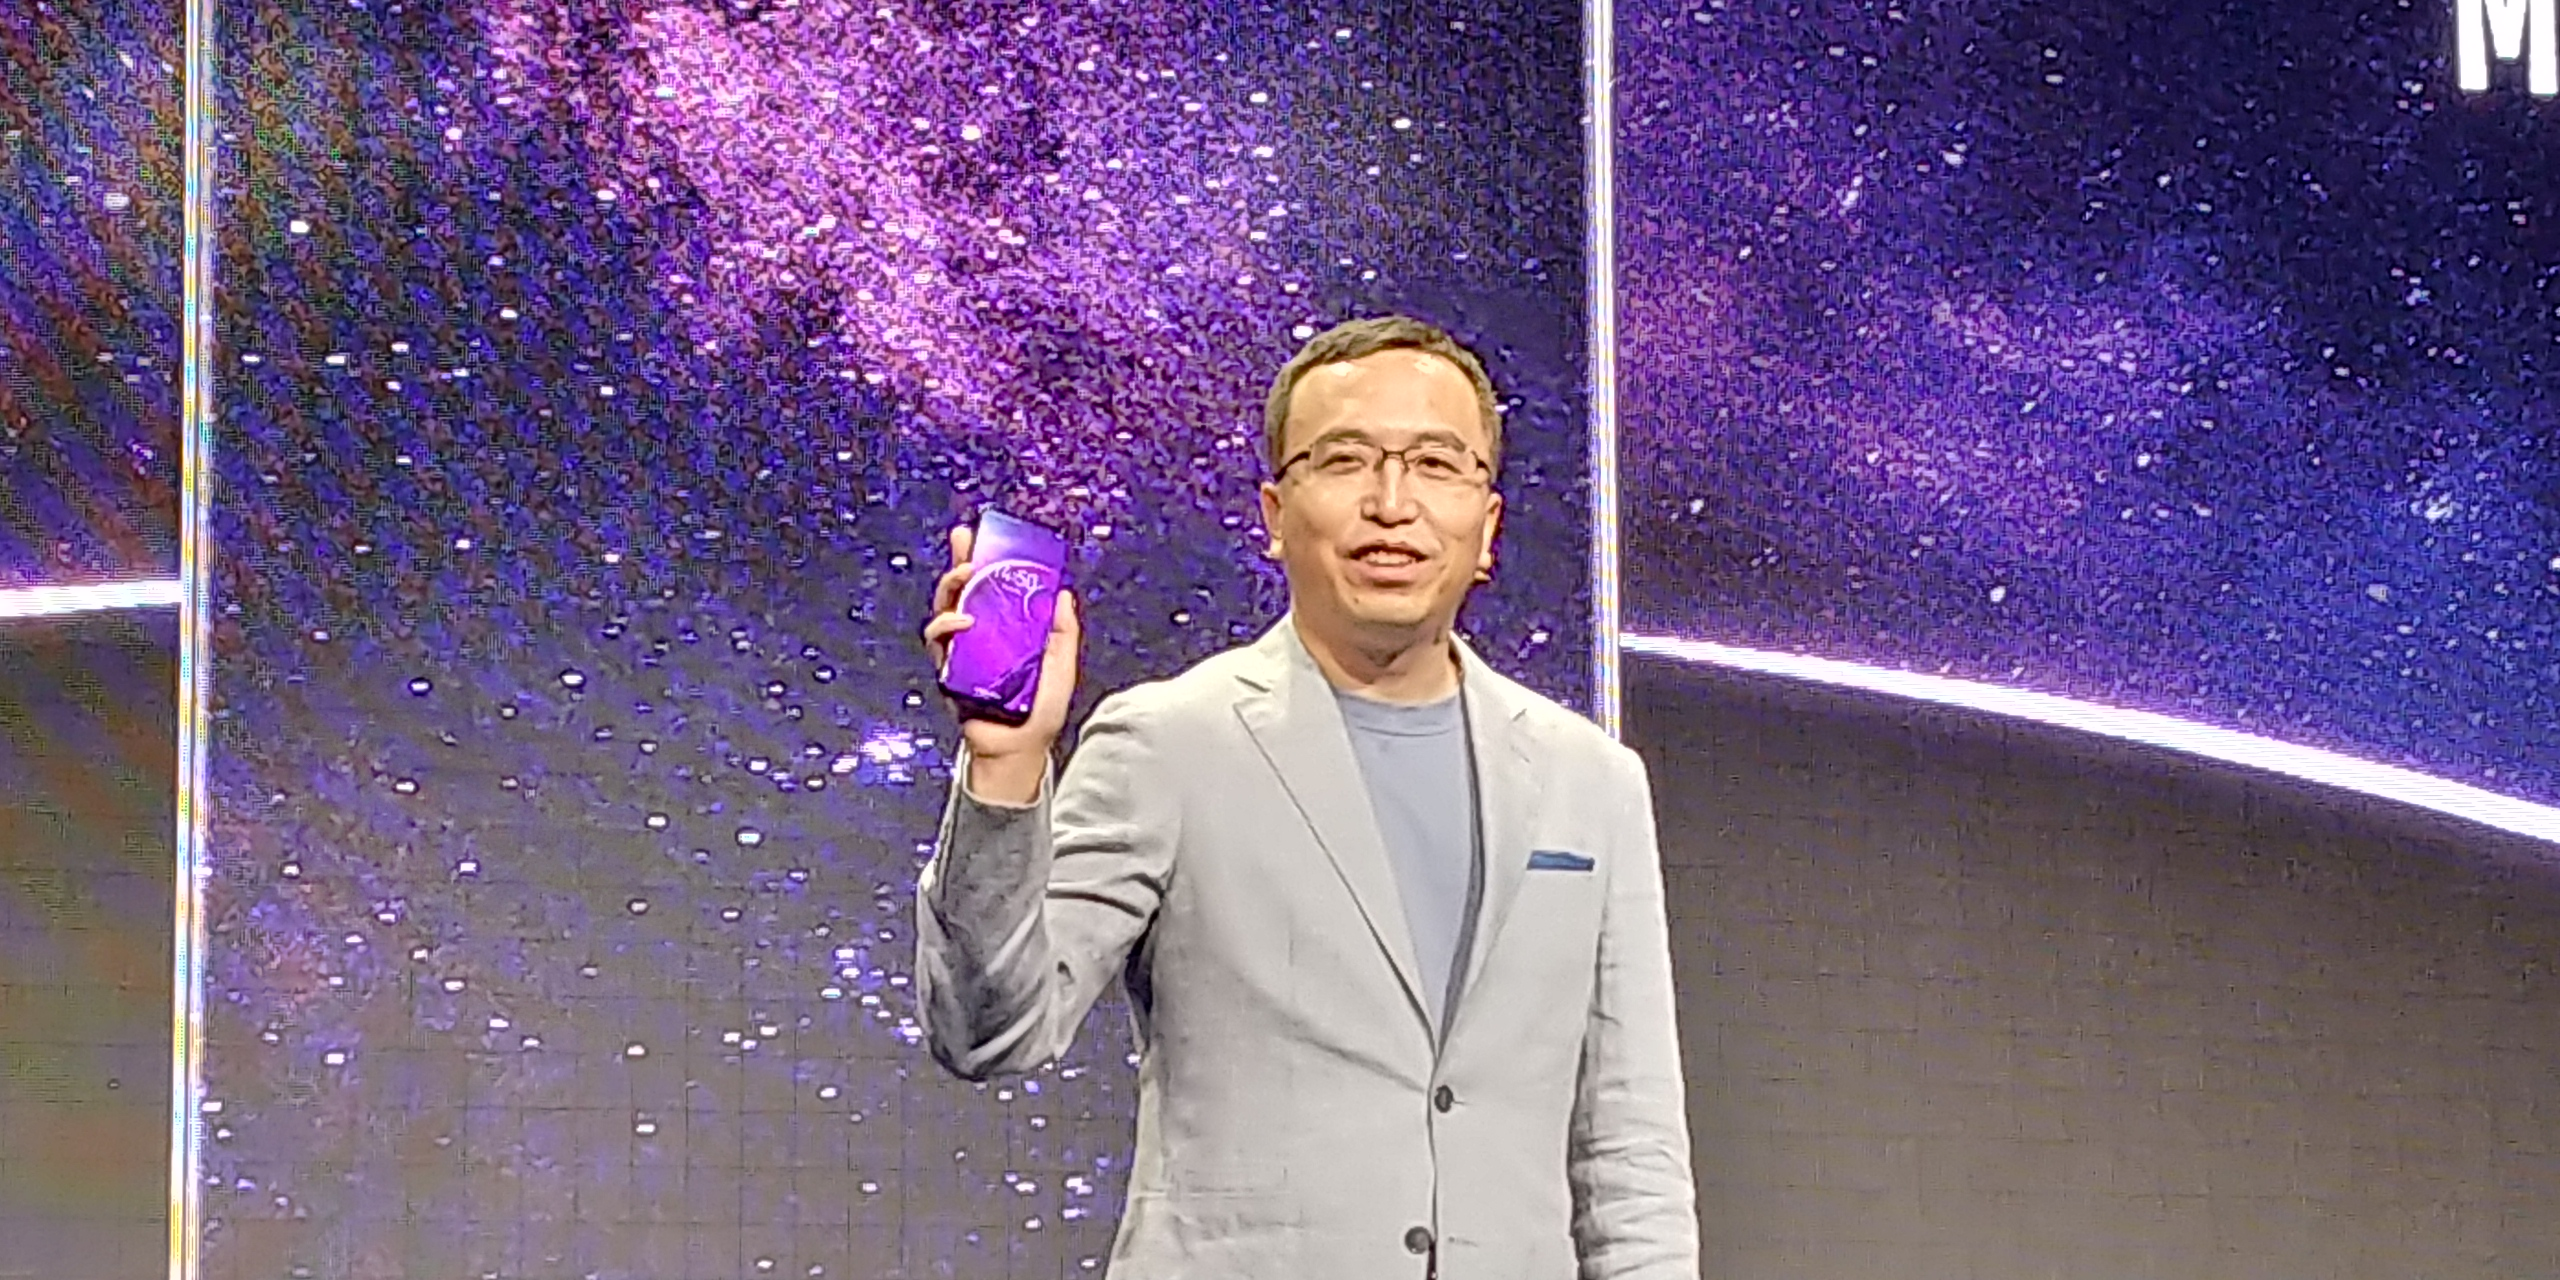 Honor Magic 2 teased at IFA 2018